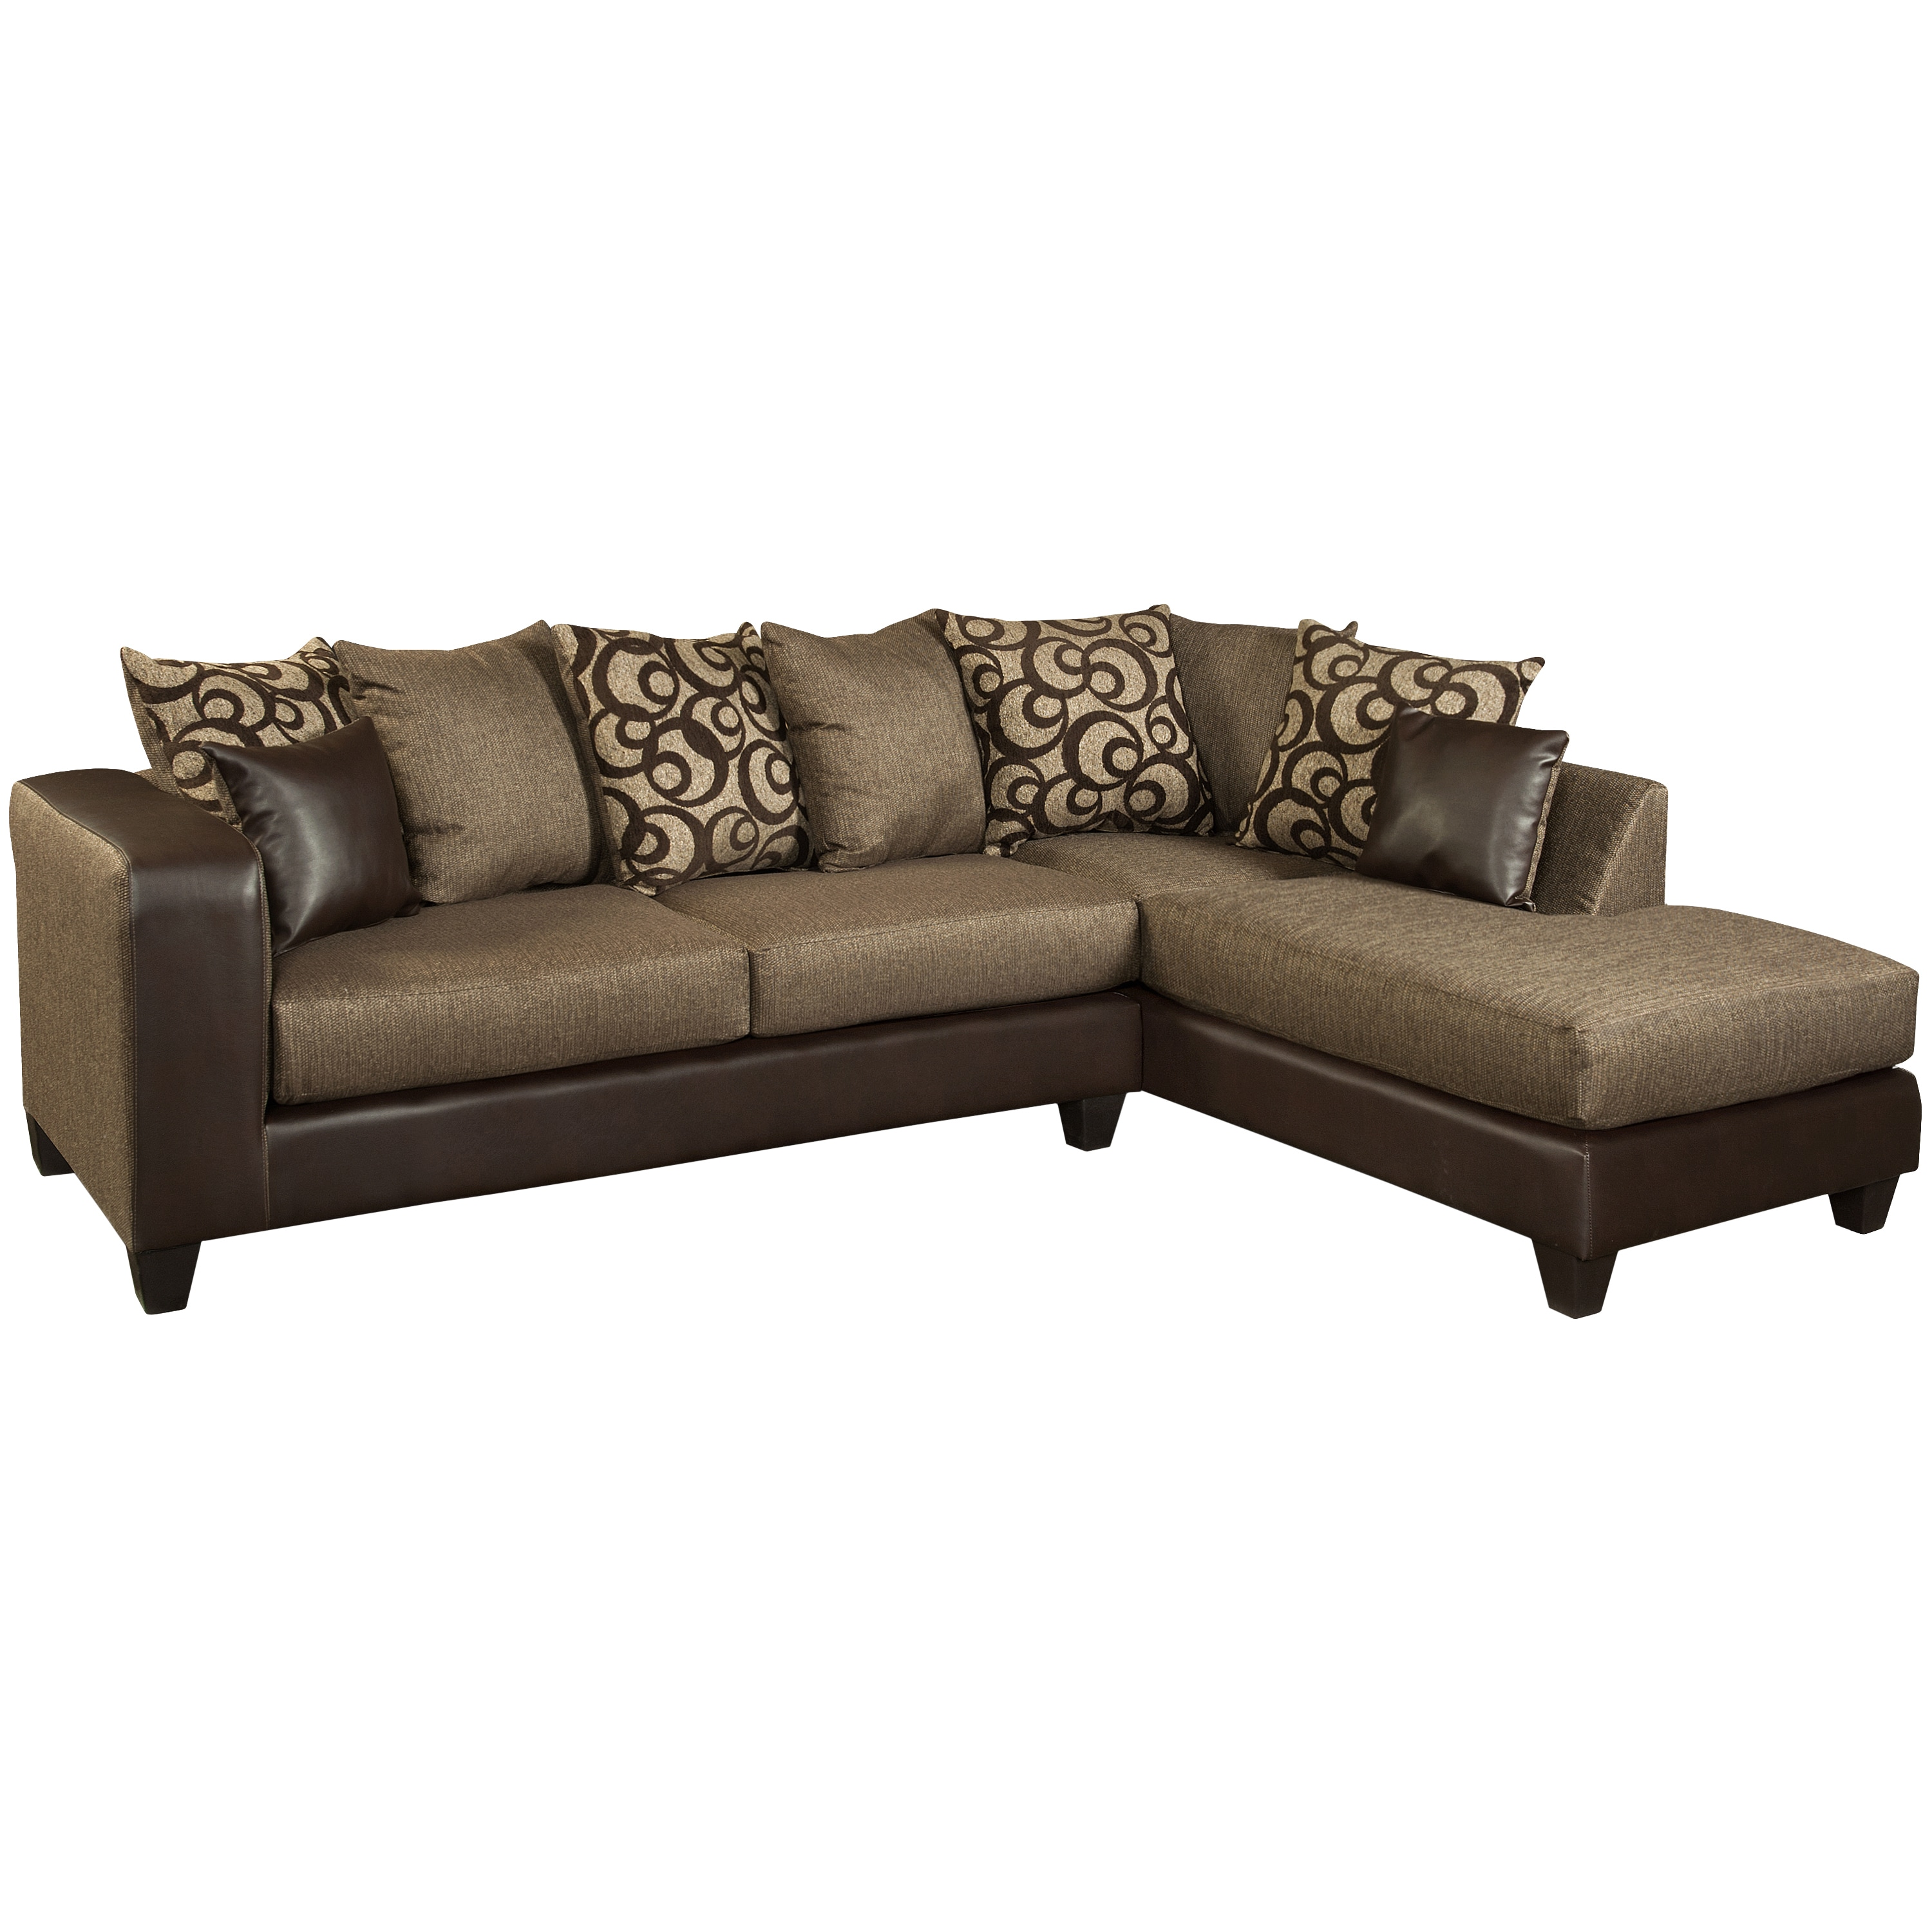 Shop Riverstone Object Espresso Chenille Sectional - Free Shipping ...